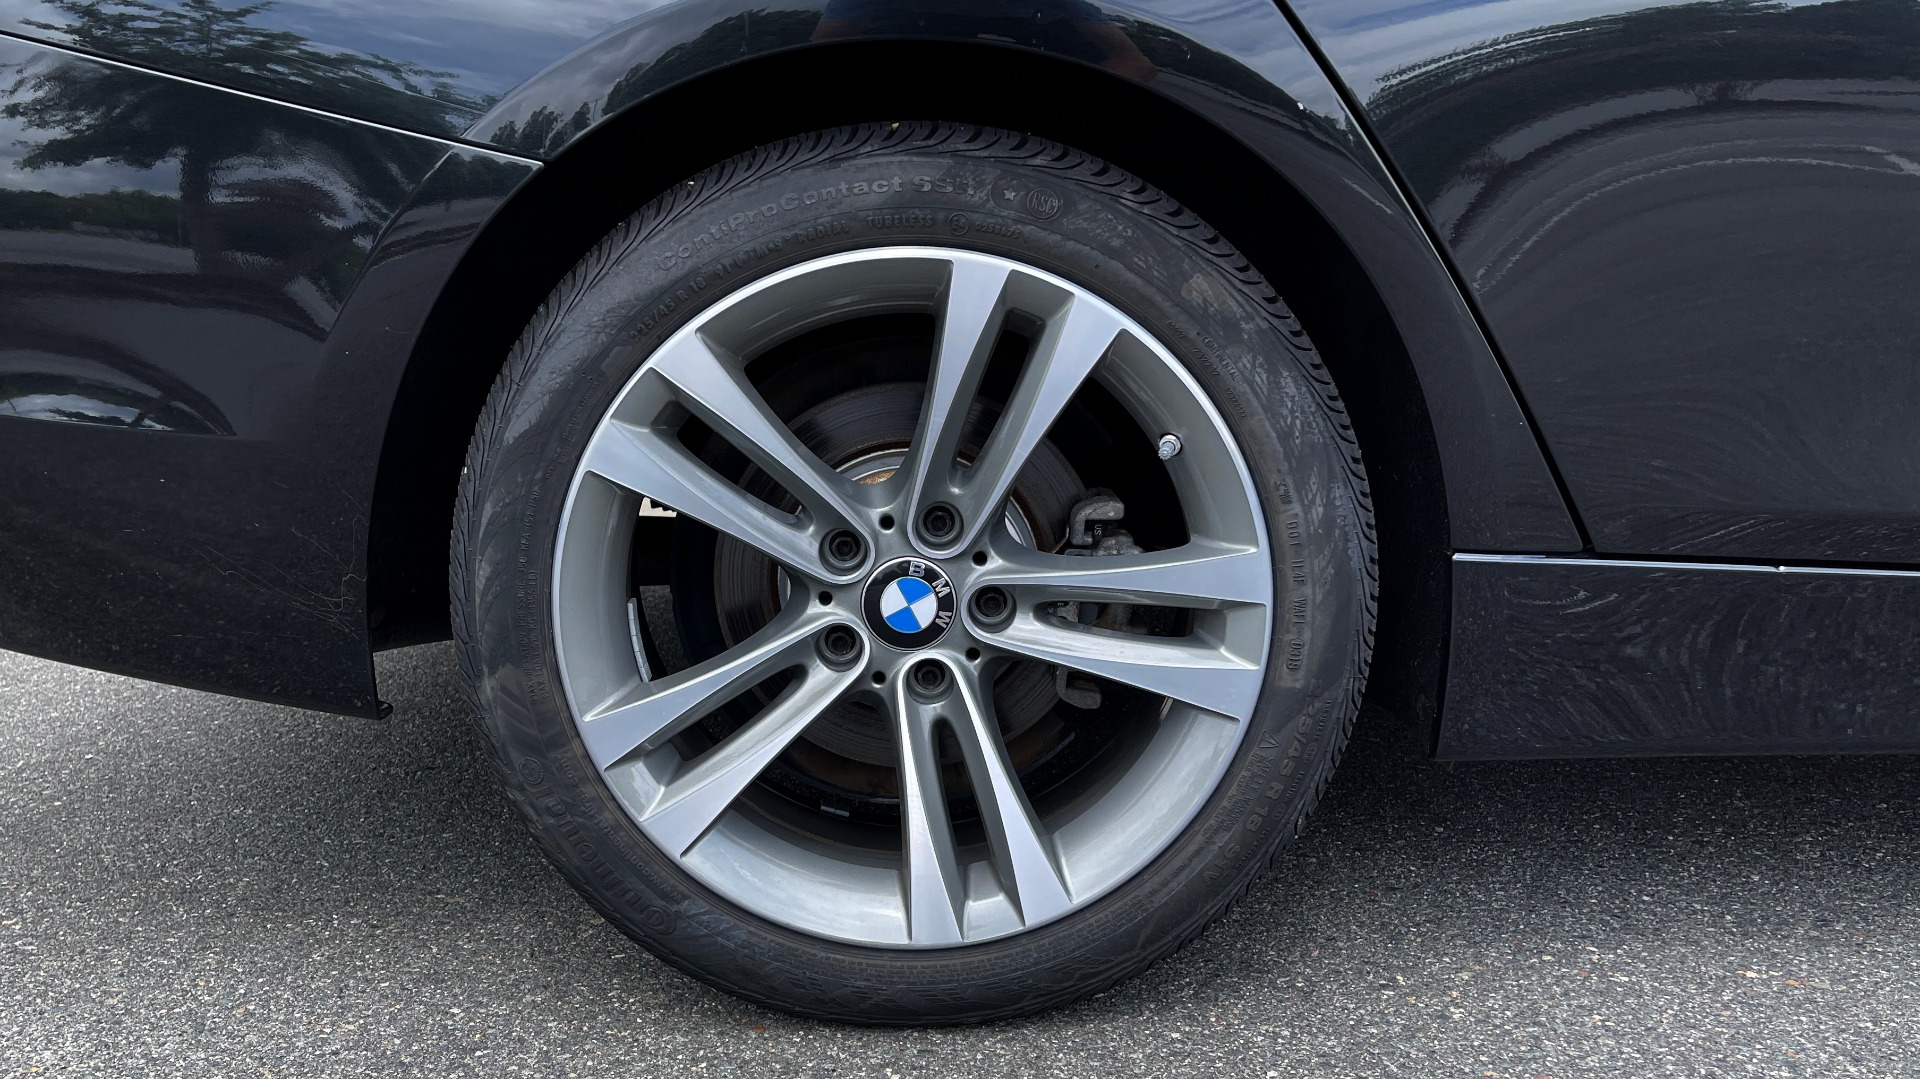 Used 2018 BMW 3 SERIES 330IXDRIVE / NAV / CONV PKG / ABSD / SUNROOF / REARVIEW for sale $29,599 at Formula Imports in Charlotte NC 28227 66